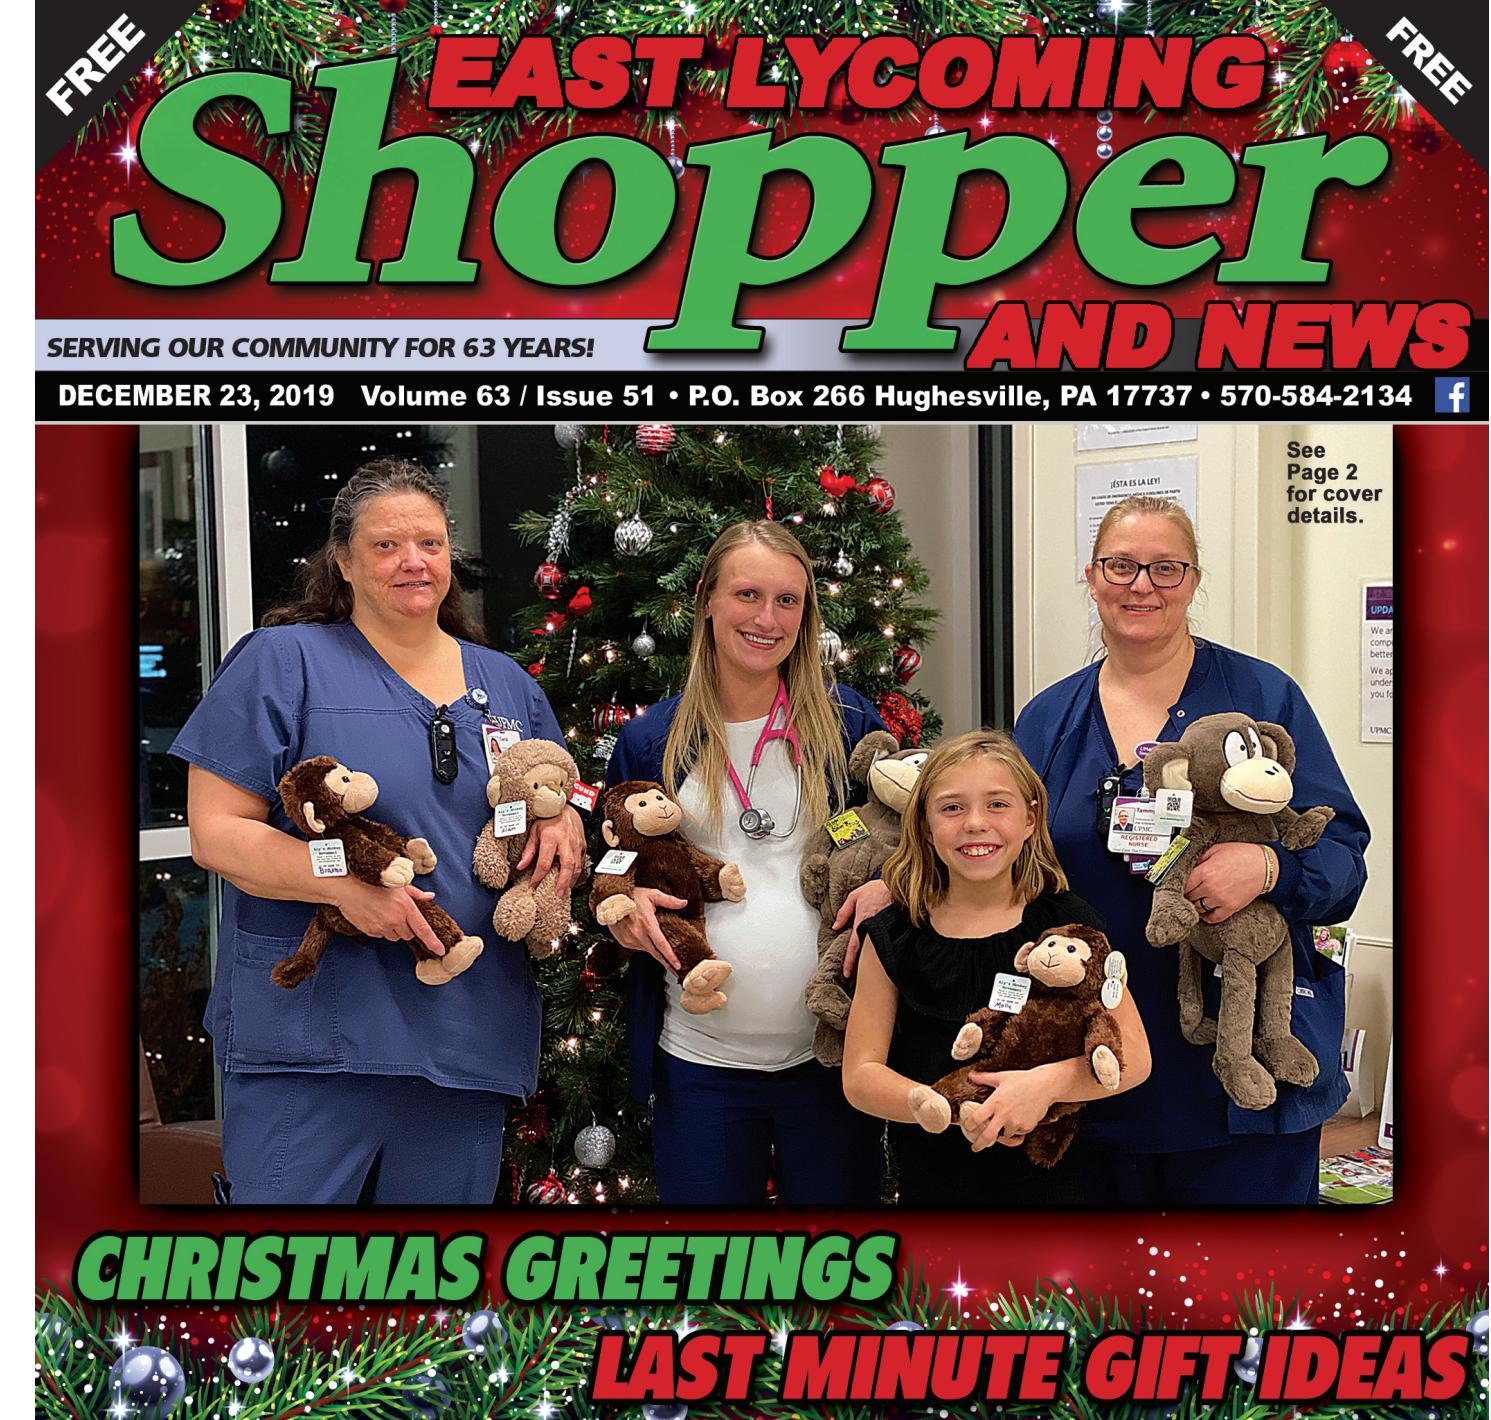 Clay Evans Fellowship Church Christmas December 23, 2020 Week of December 23   29, 2019 by East Lycoming Shopper & News   issuu